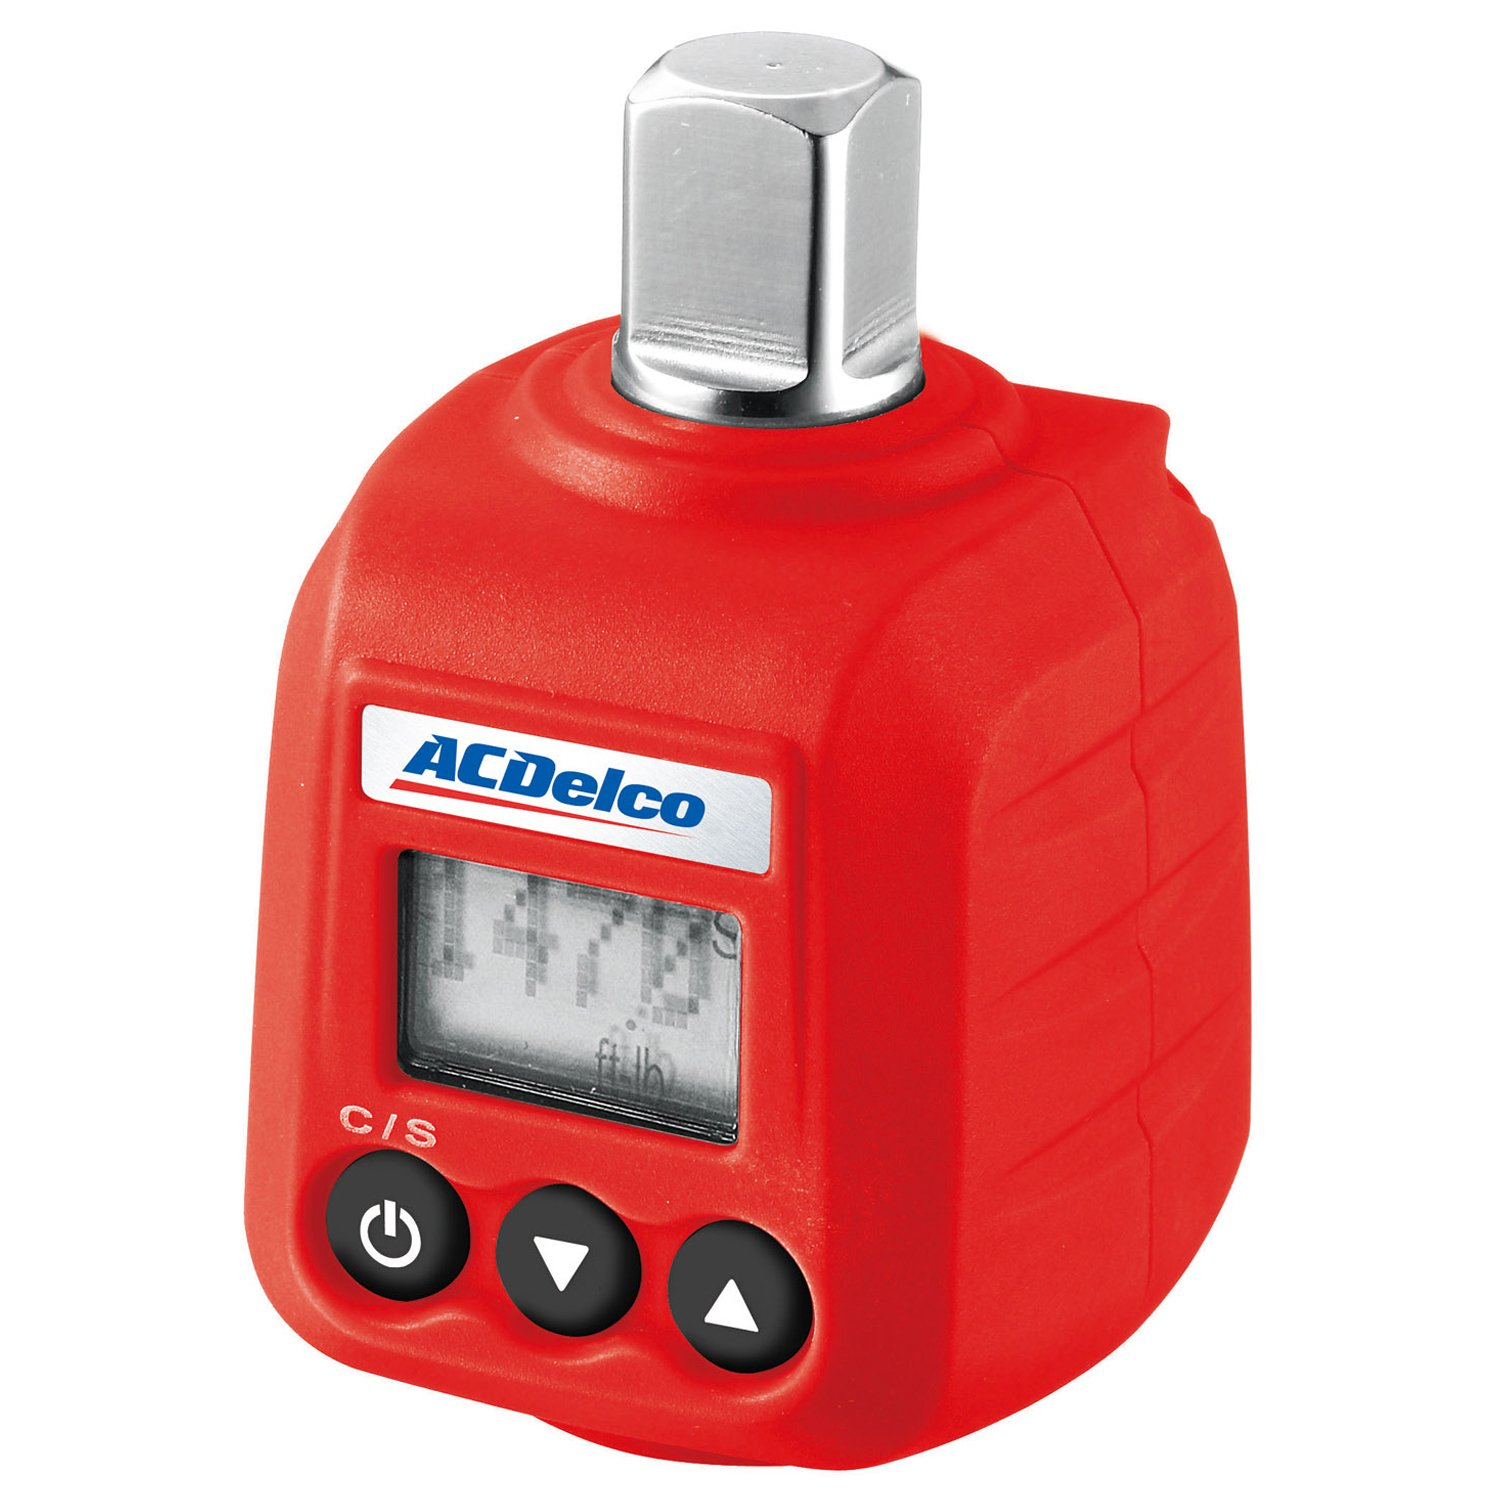 ACDelco ARM602-4 1/2'' Digital Torque Adapter (4-147.6 ft-lbs) with Audible Alert by ACDelco